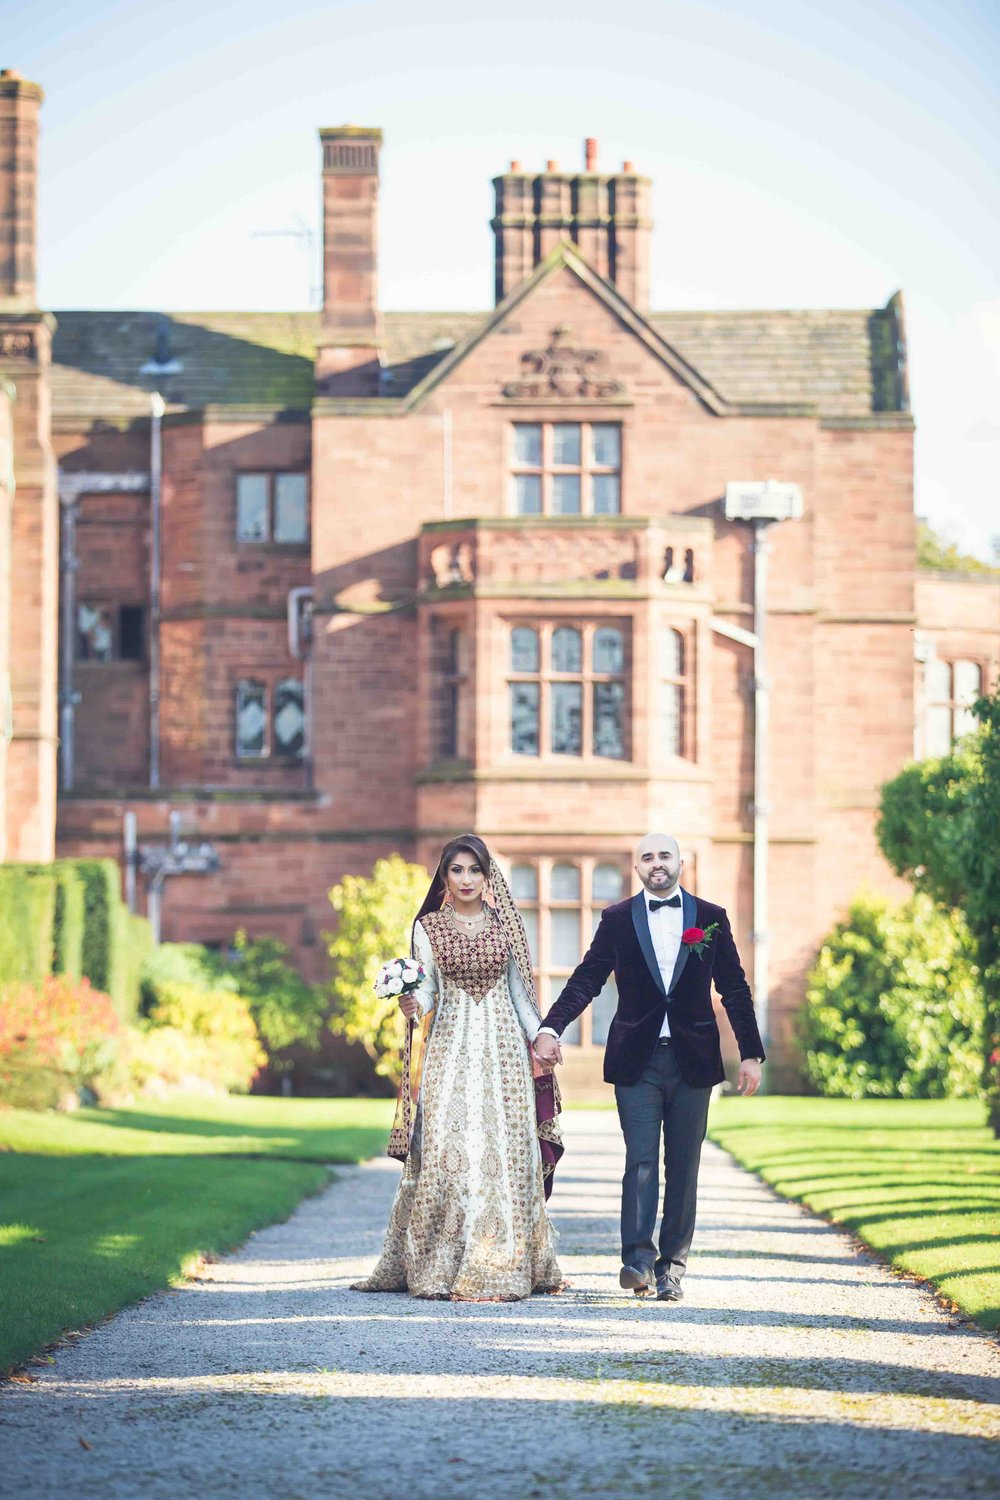 Asian Wedding Photographer Opu Sultan Photography Lyme Park Scotland Edinburgh Glasgow London Manchester Liverpool Birmingham Wedding Photos prewed shoot Azman & Saira Blog-87.jpg